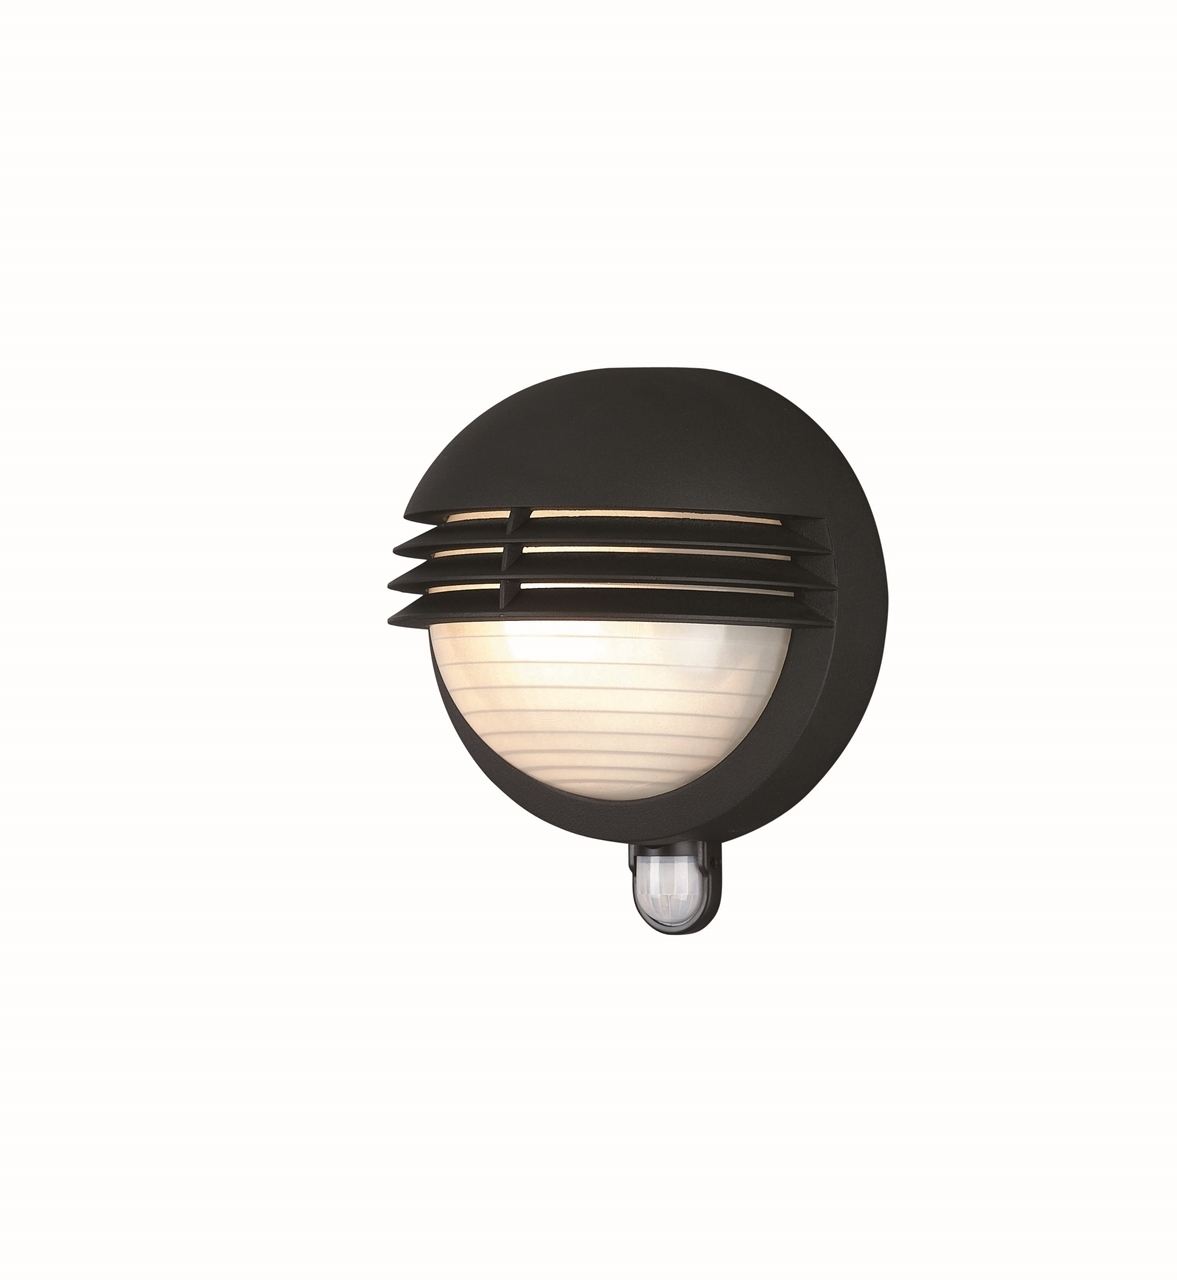 Outdoor Pir Wall Lights Throughout 2018 K Lighting Supplies – Indoor, Outdoor & Led Lighting Specialists (View 8 of 20)